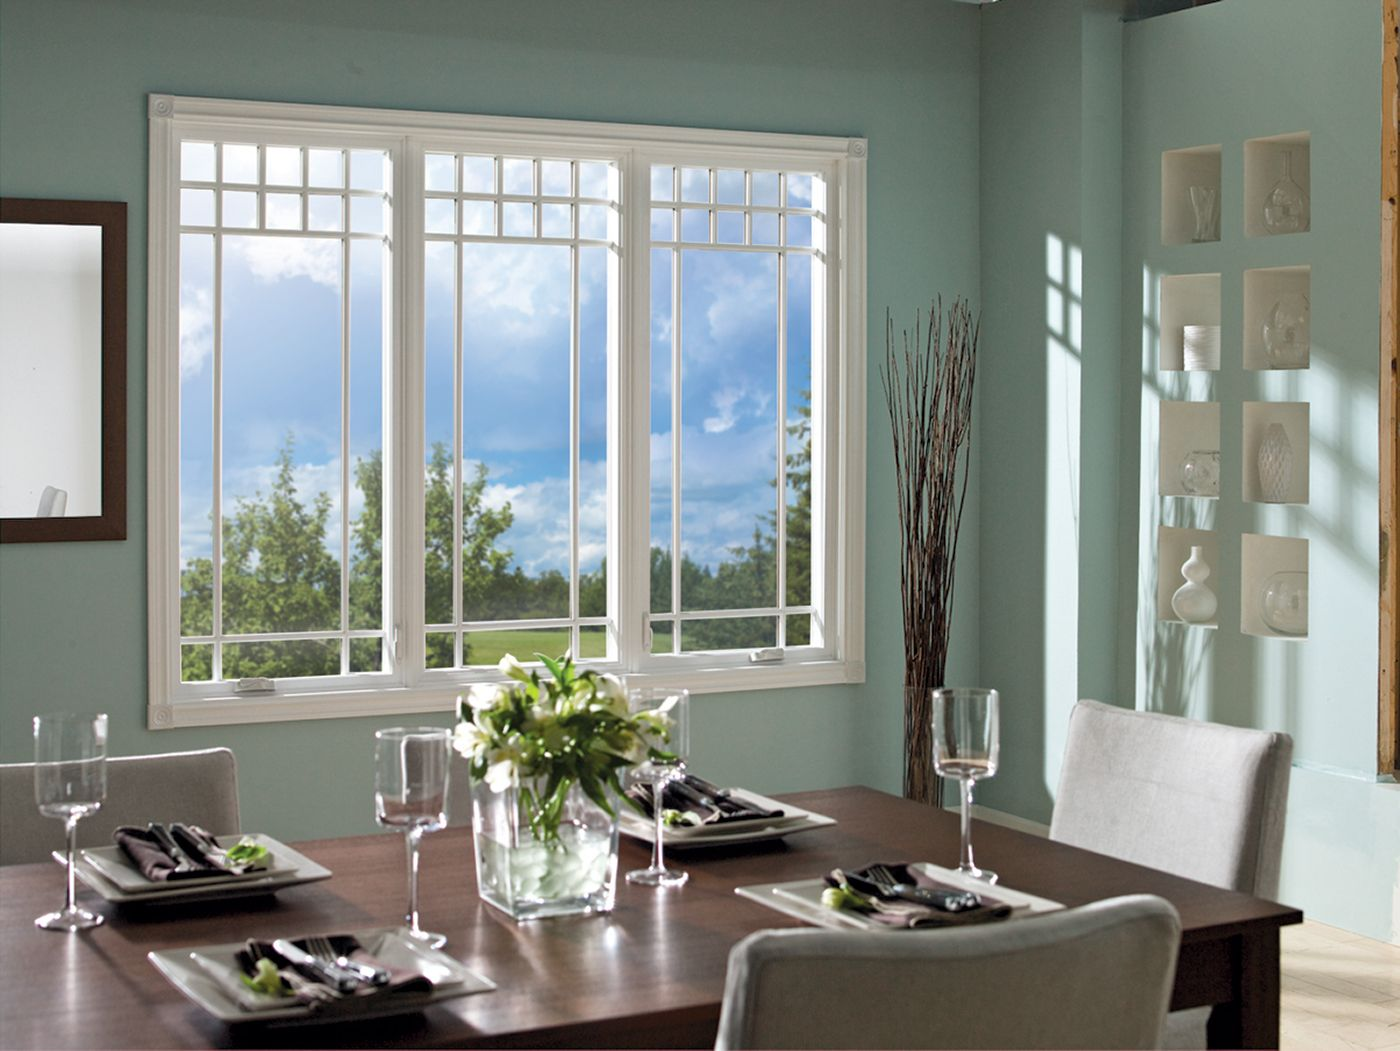 Stunning Home Design Windows Pictures - Interior Design Ideas ...